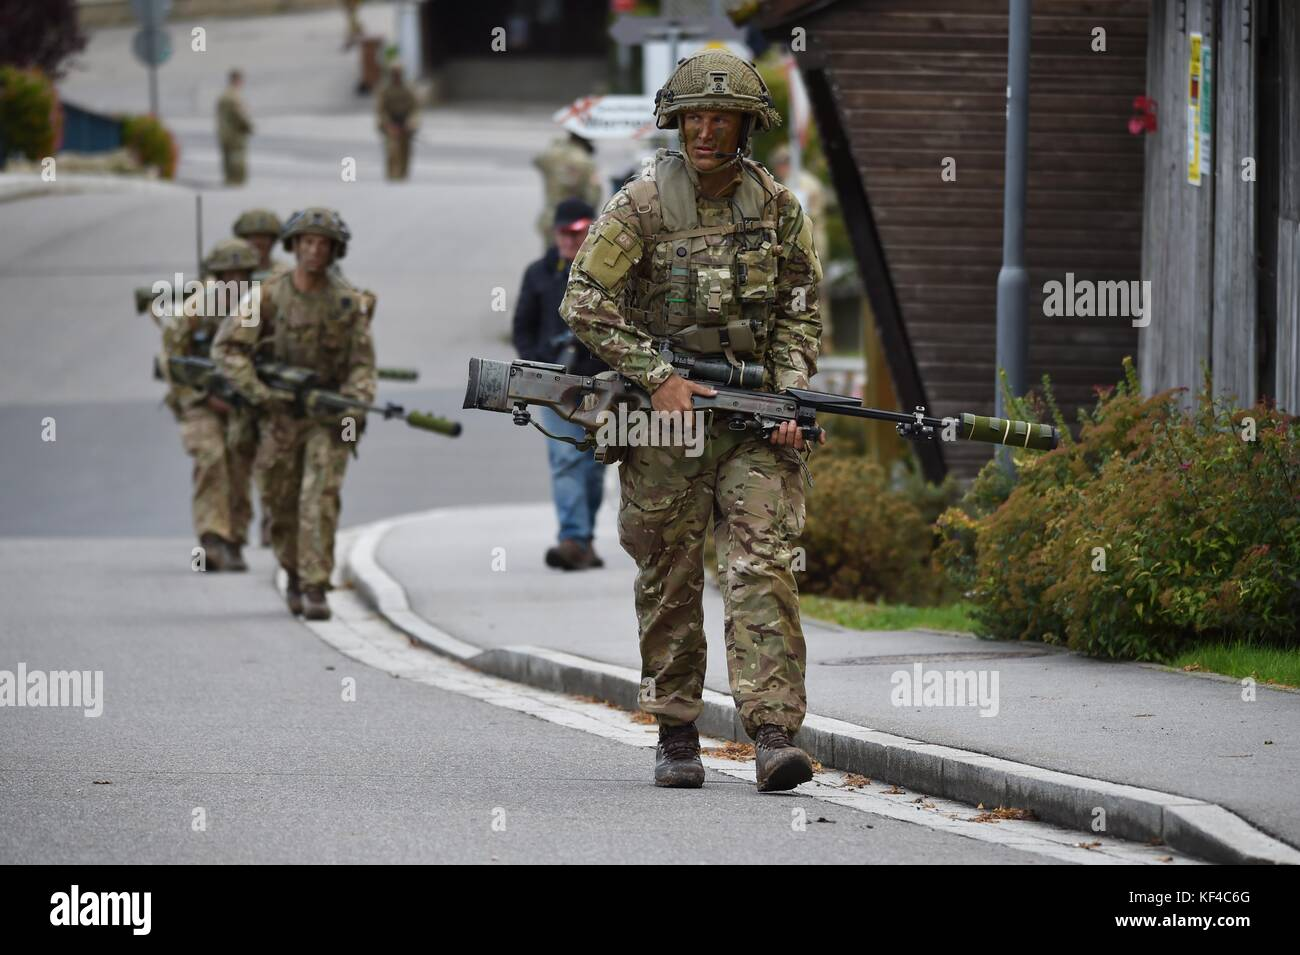 British soldiers walk through a village during Exercise Swift Response near the Joint Multinational Readiness Center - Stock Image